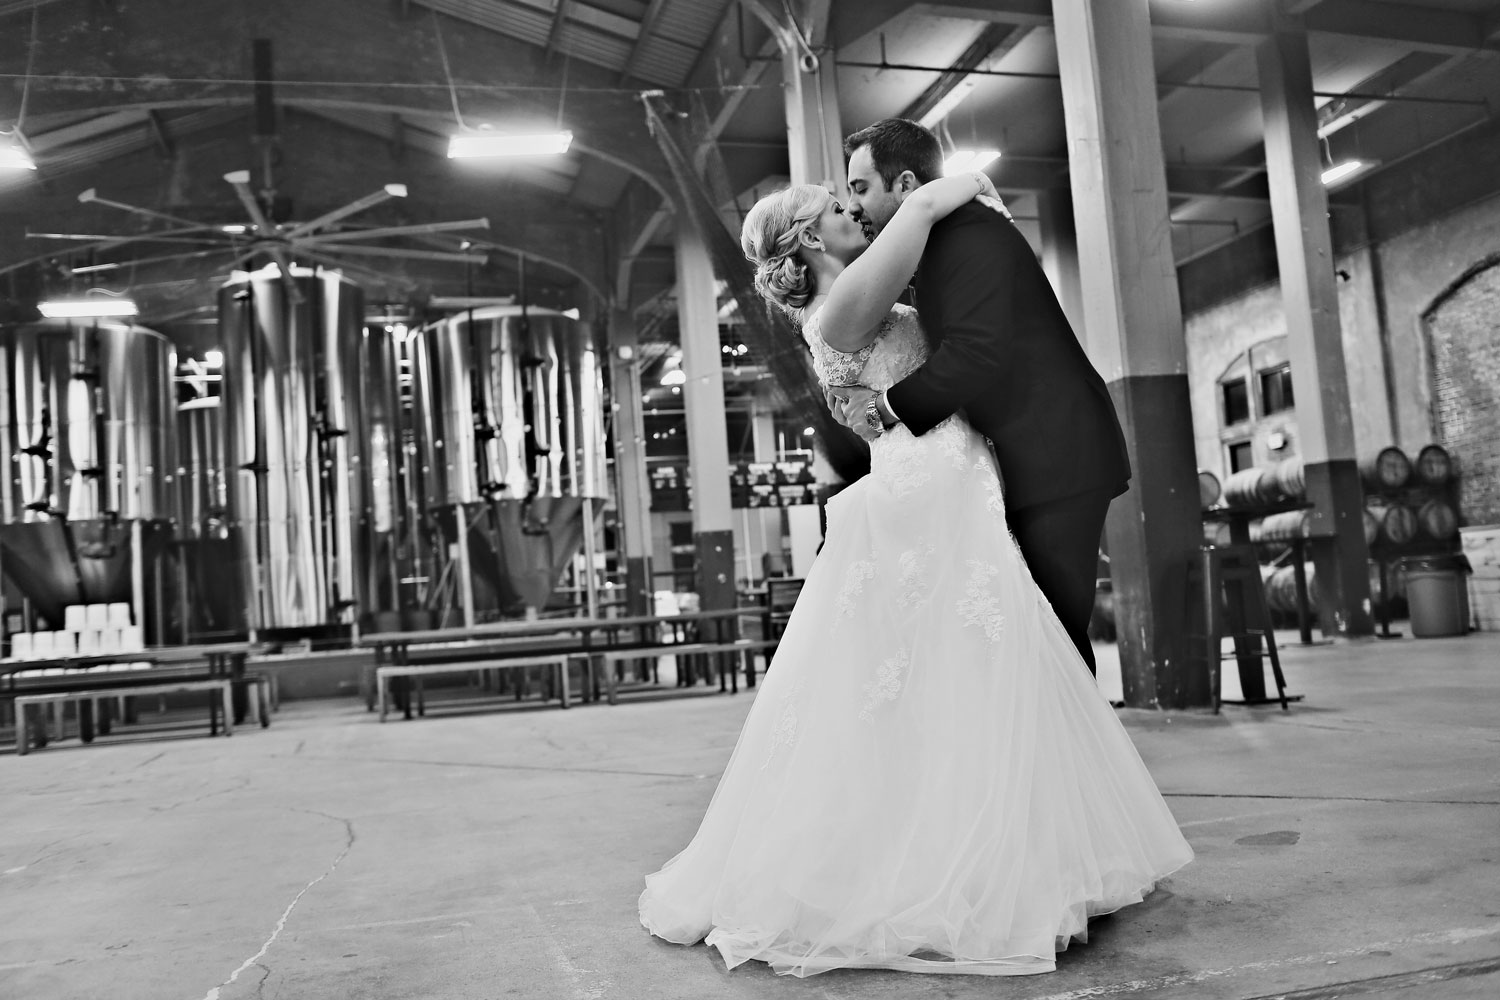 Bride and groom kiss in beer brewery wedding portrait